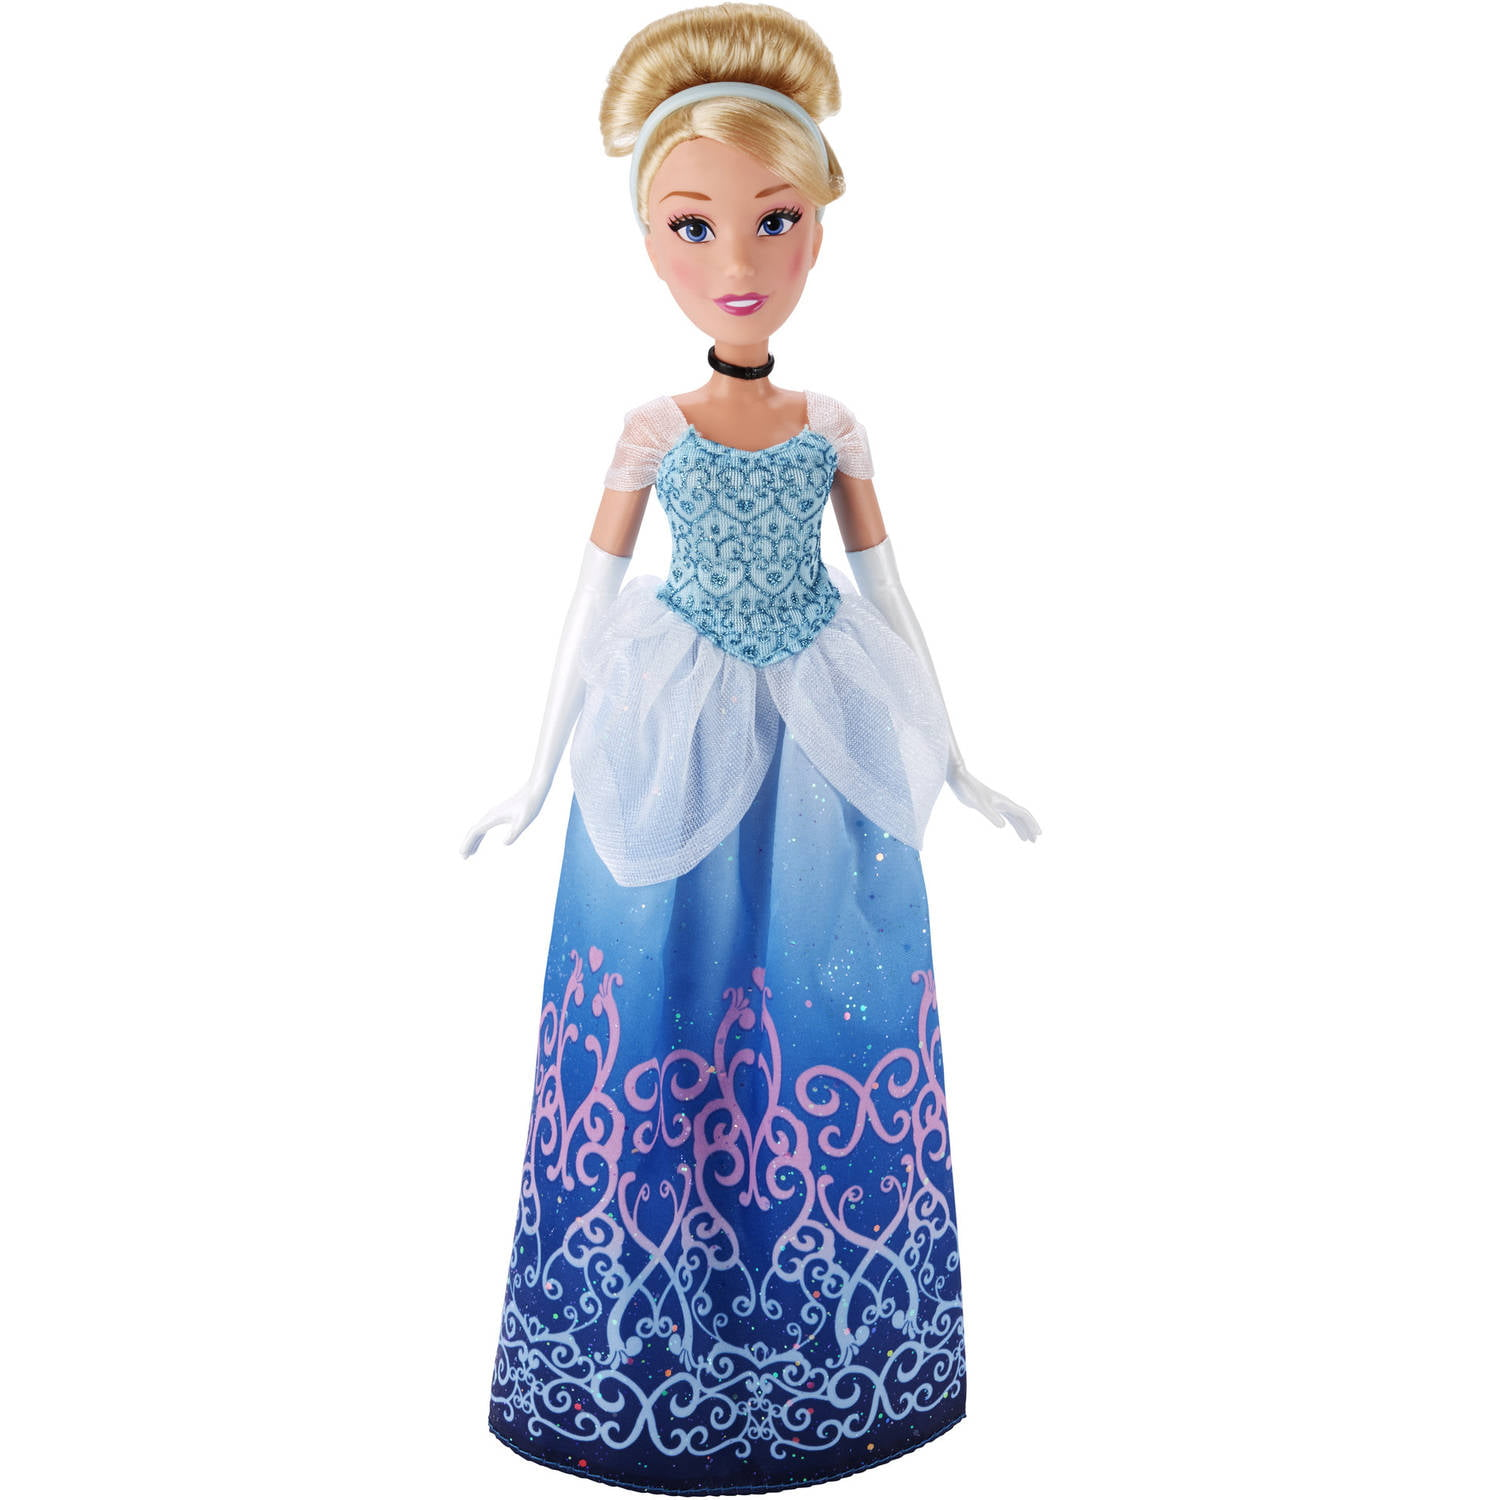 Disney Princess Royal Shimmer Cinderella Doll by Hasbro Inc